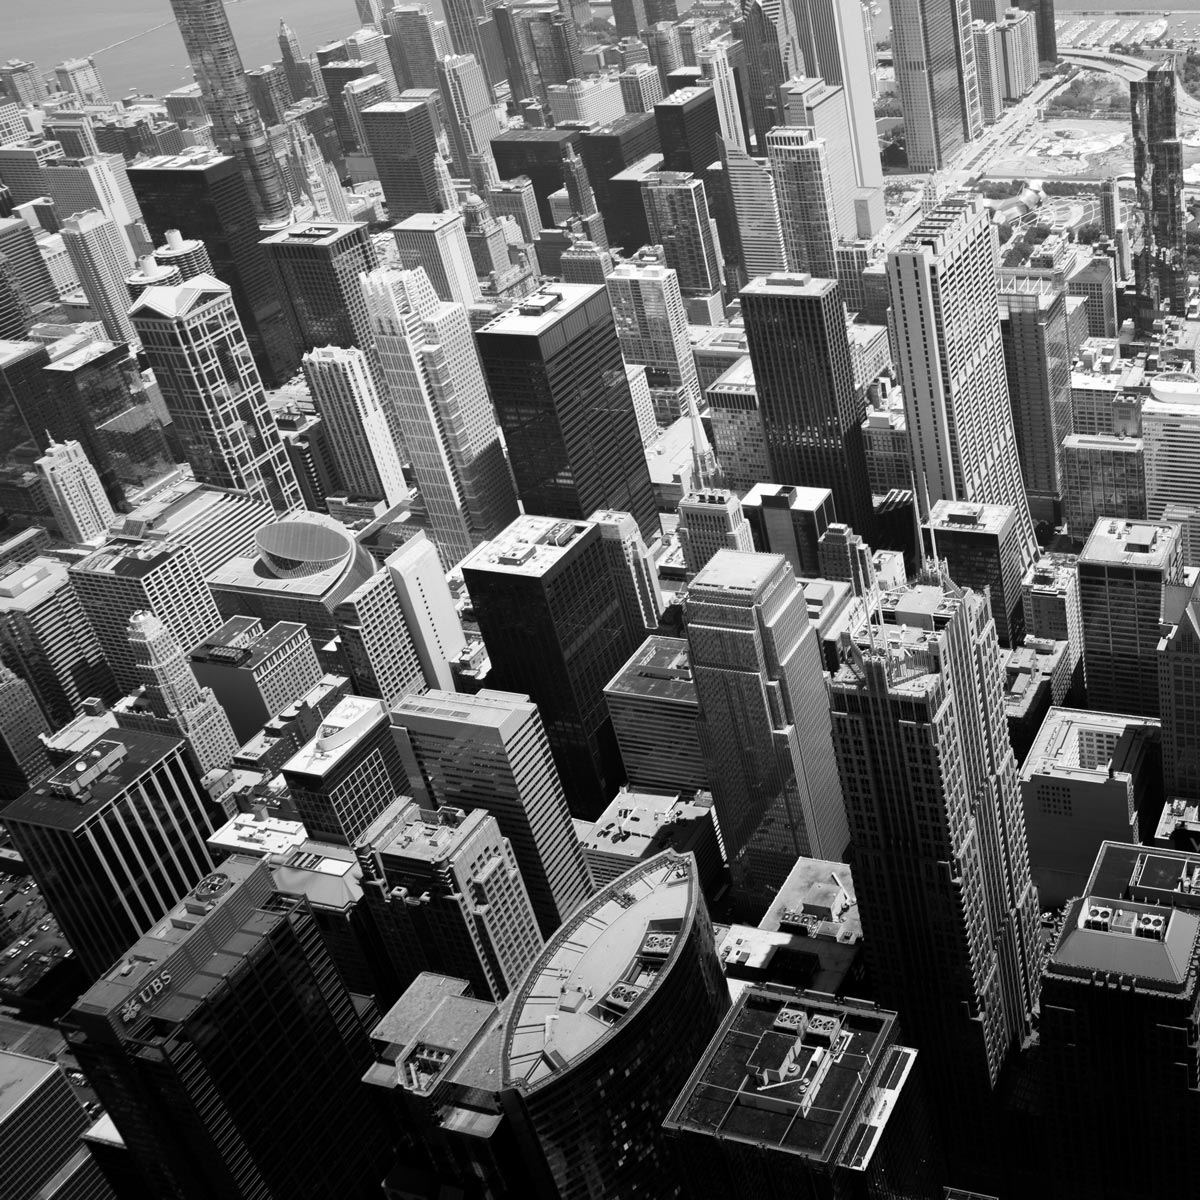 Overhead shot of the city in black and white by Jason Peterson